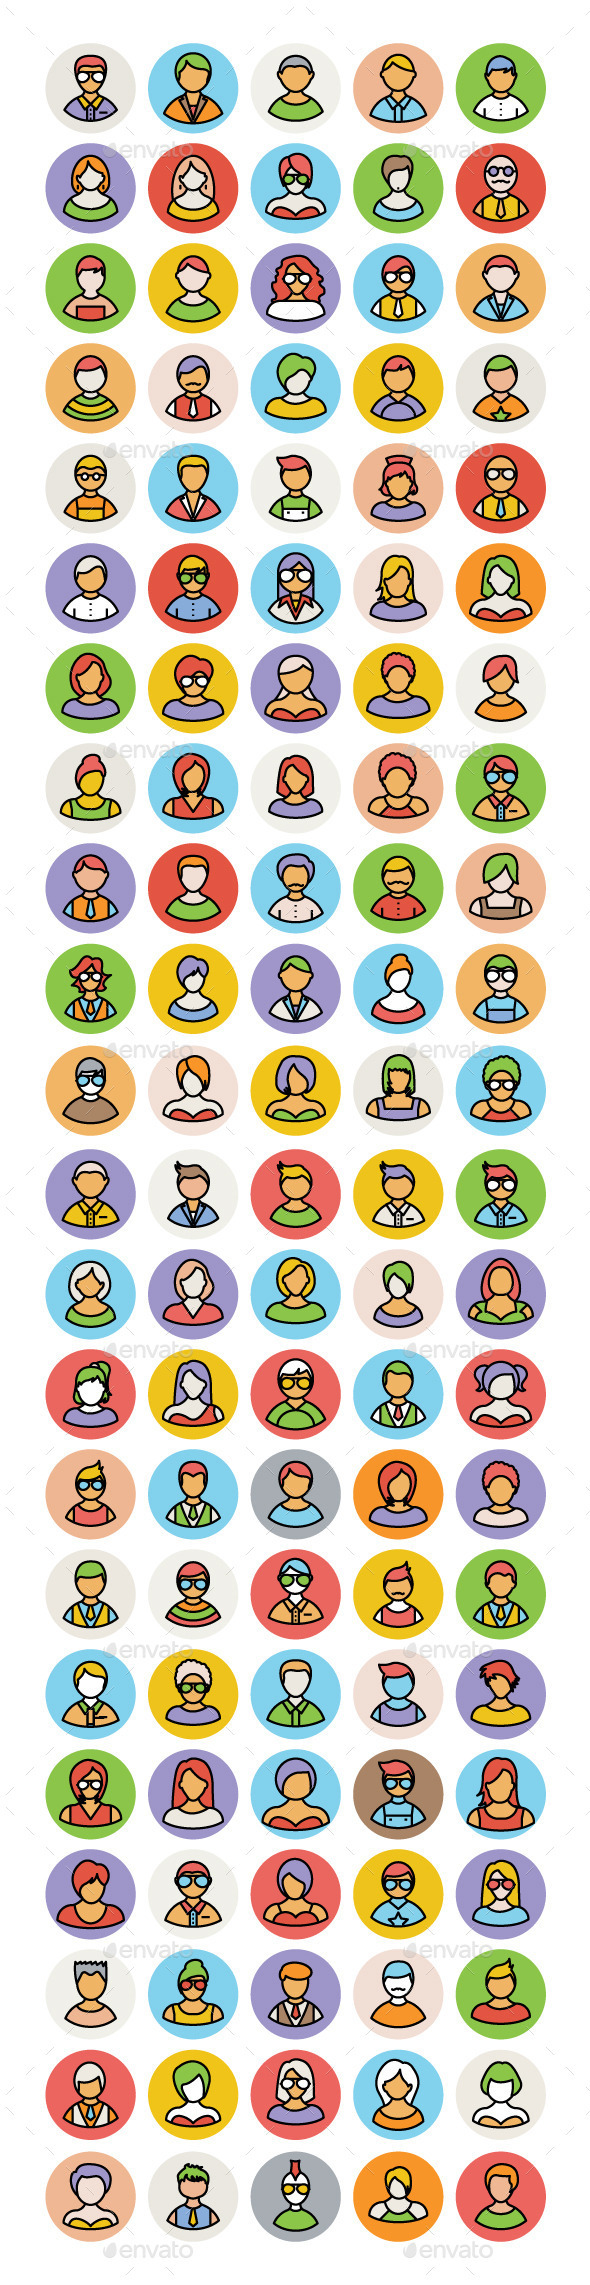 100+ People Avatar Vector Icons - People Characters